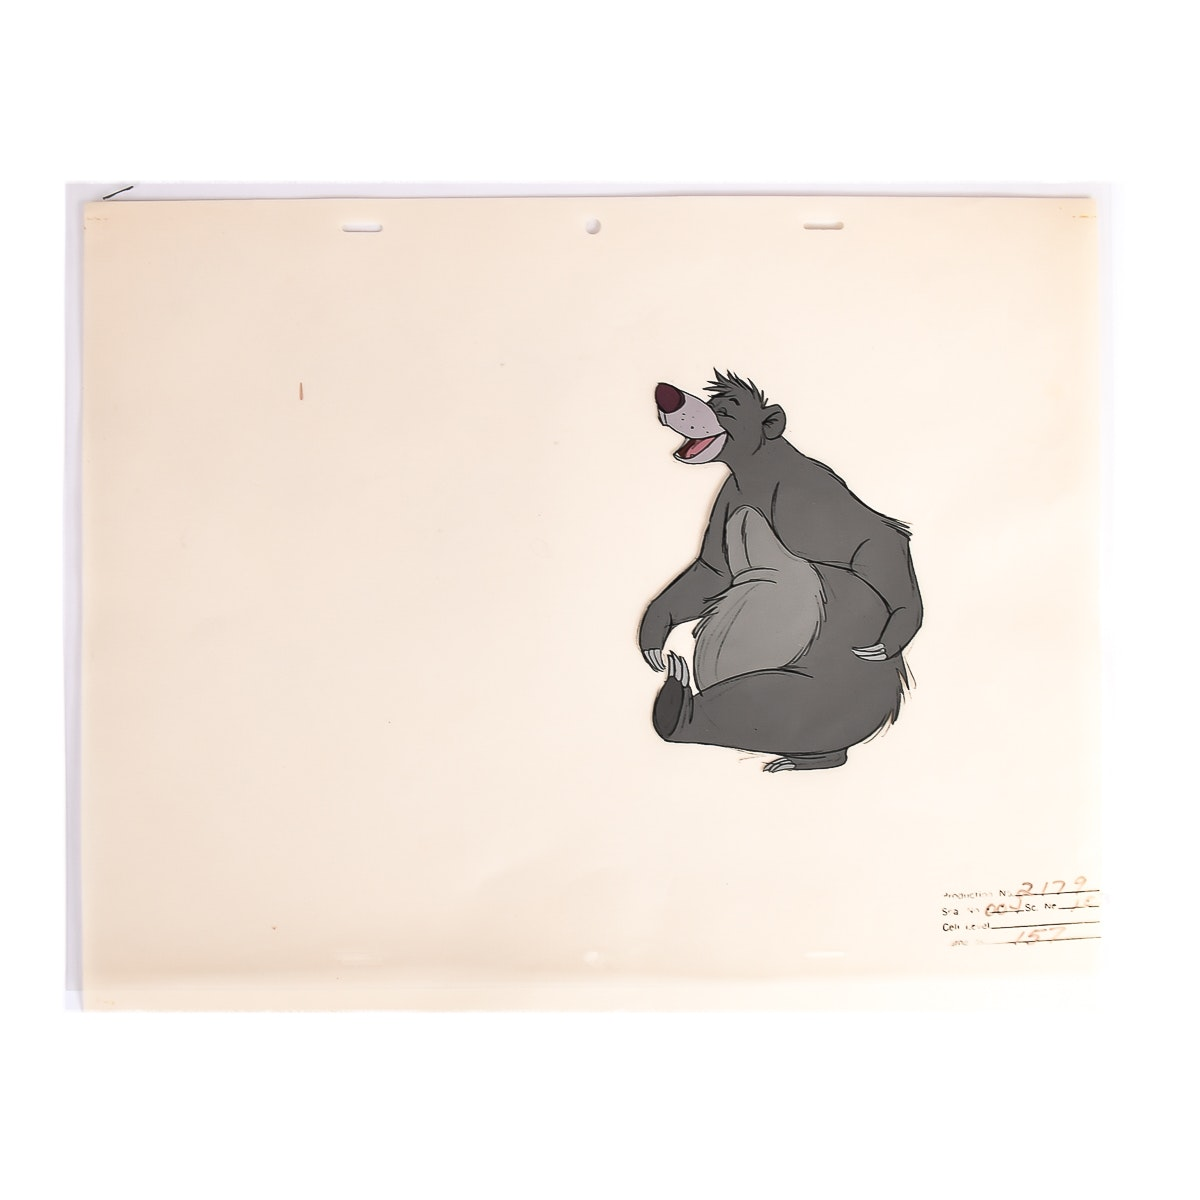 "Disney's Baloo from ""The Jungle Book"" Celluloid"